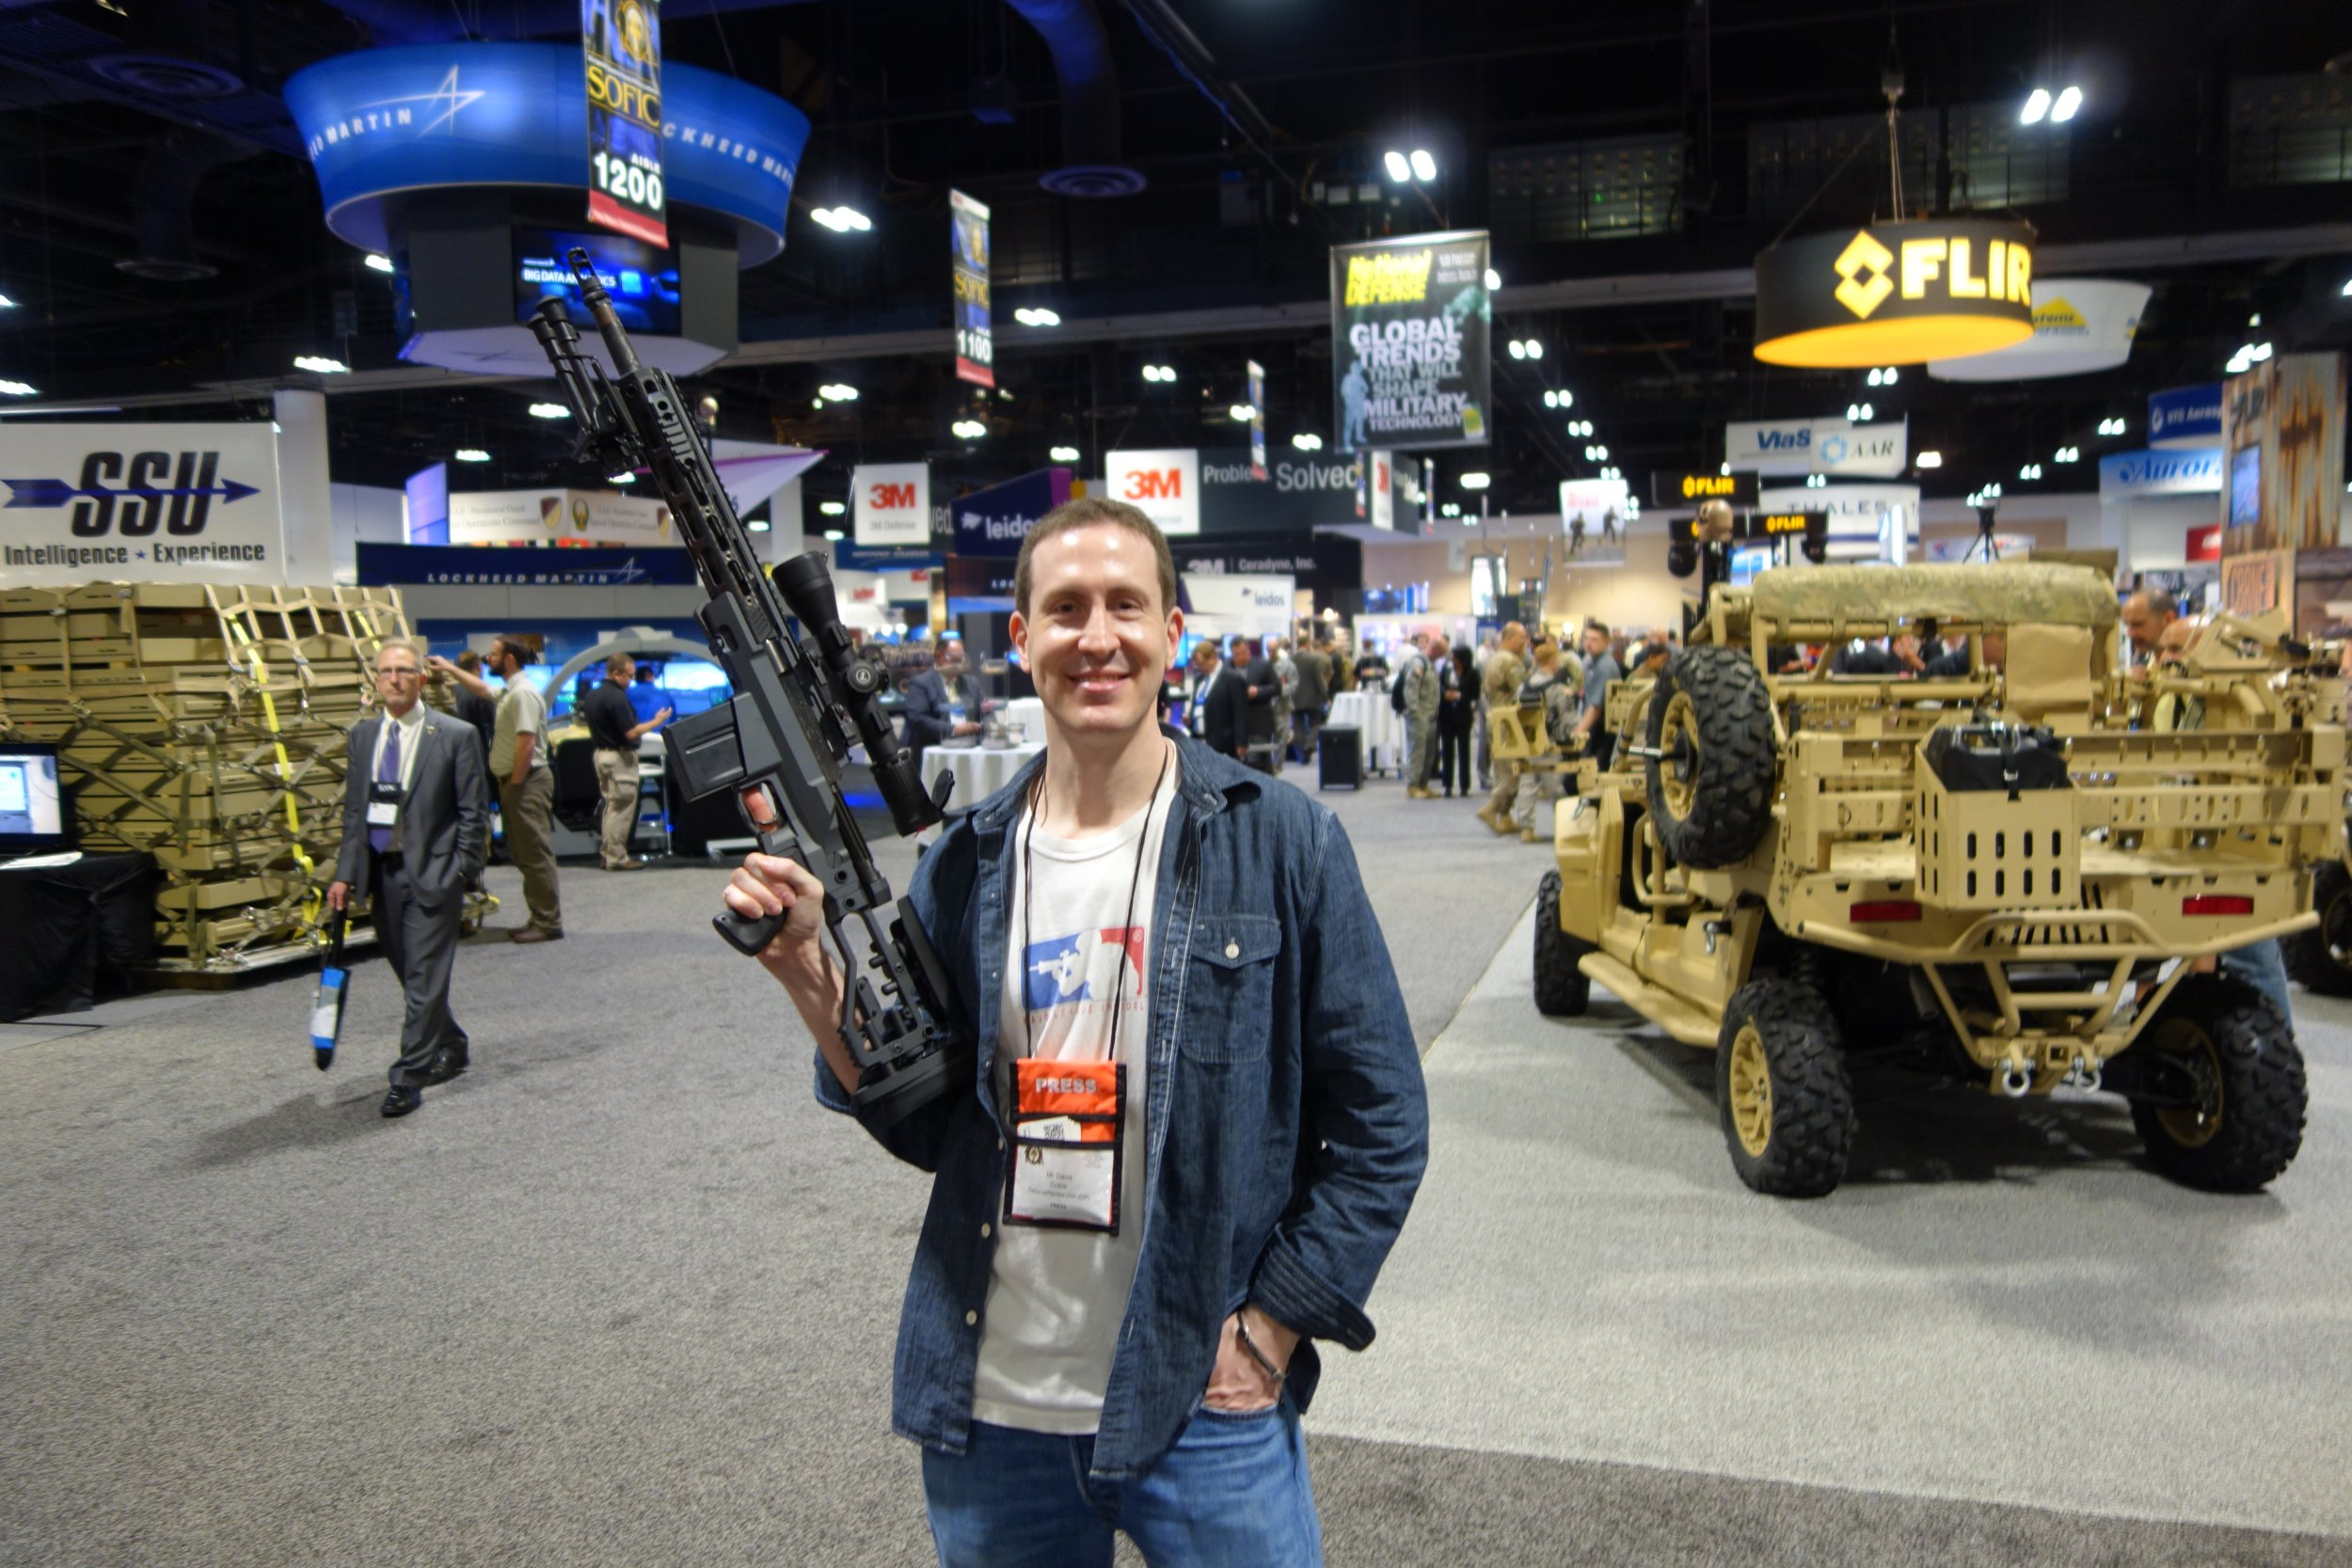 Remington Defense CSR Concealable Sniper Rifle Rucksack Rifle Breakdown Takedown Suppressed Sniper Carbine with Proof Research 16 inch Carbone Fiber Wrapped Barrel NDIA SOFIC 2014 David Crane DefenseReview.com DR 9 Medium Remington Defense CSR (Concealable Sniper Rifle) Rucksack Rifle: Lightweight, Compact 7.62mm NATO/.308 Win. Bolt Action Breakdown/Takedown Suppressed Sniper Carbine with 14 16 Proof Research Carbon Fiber Wrapped Barrel for Your Backpack! (Video!)